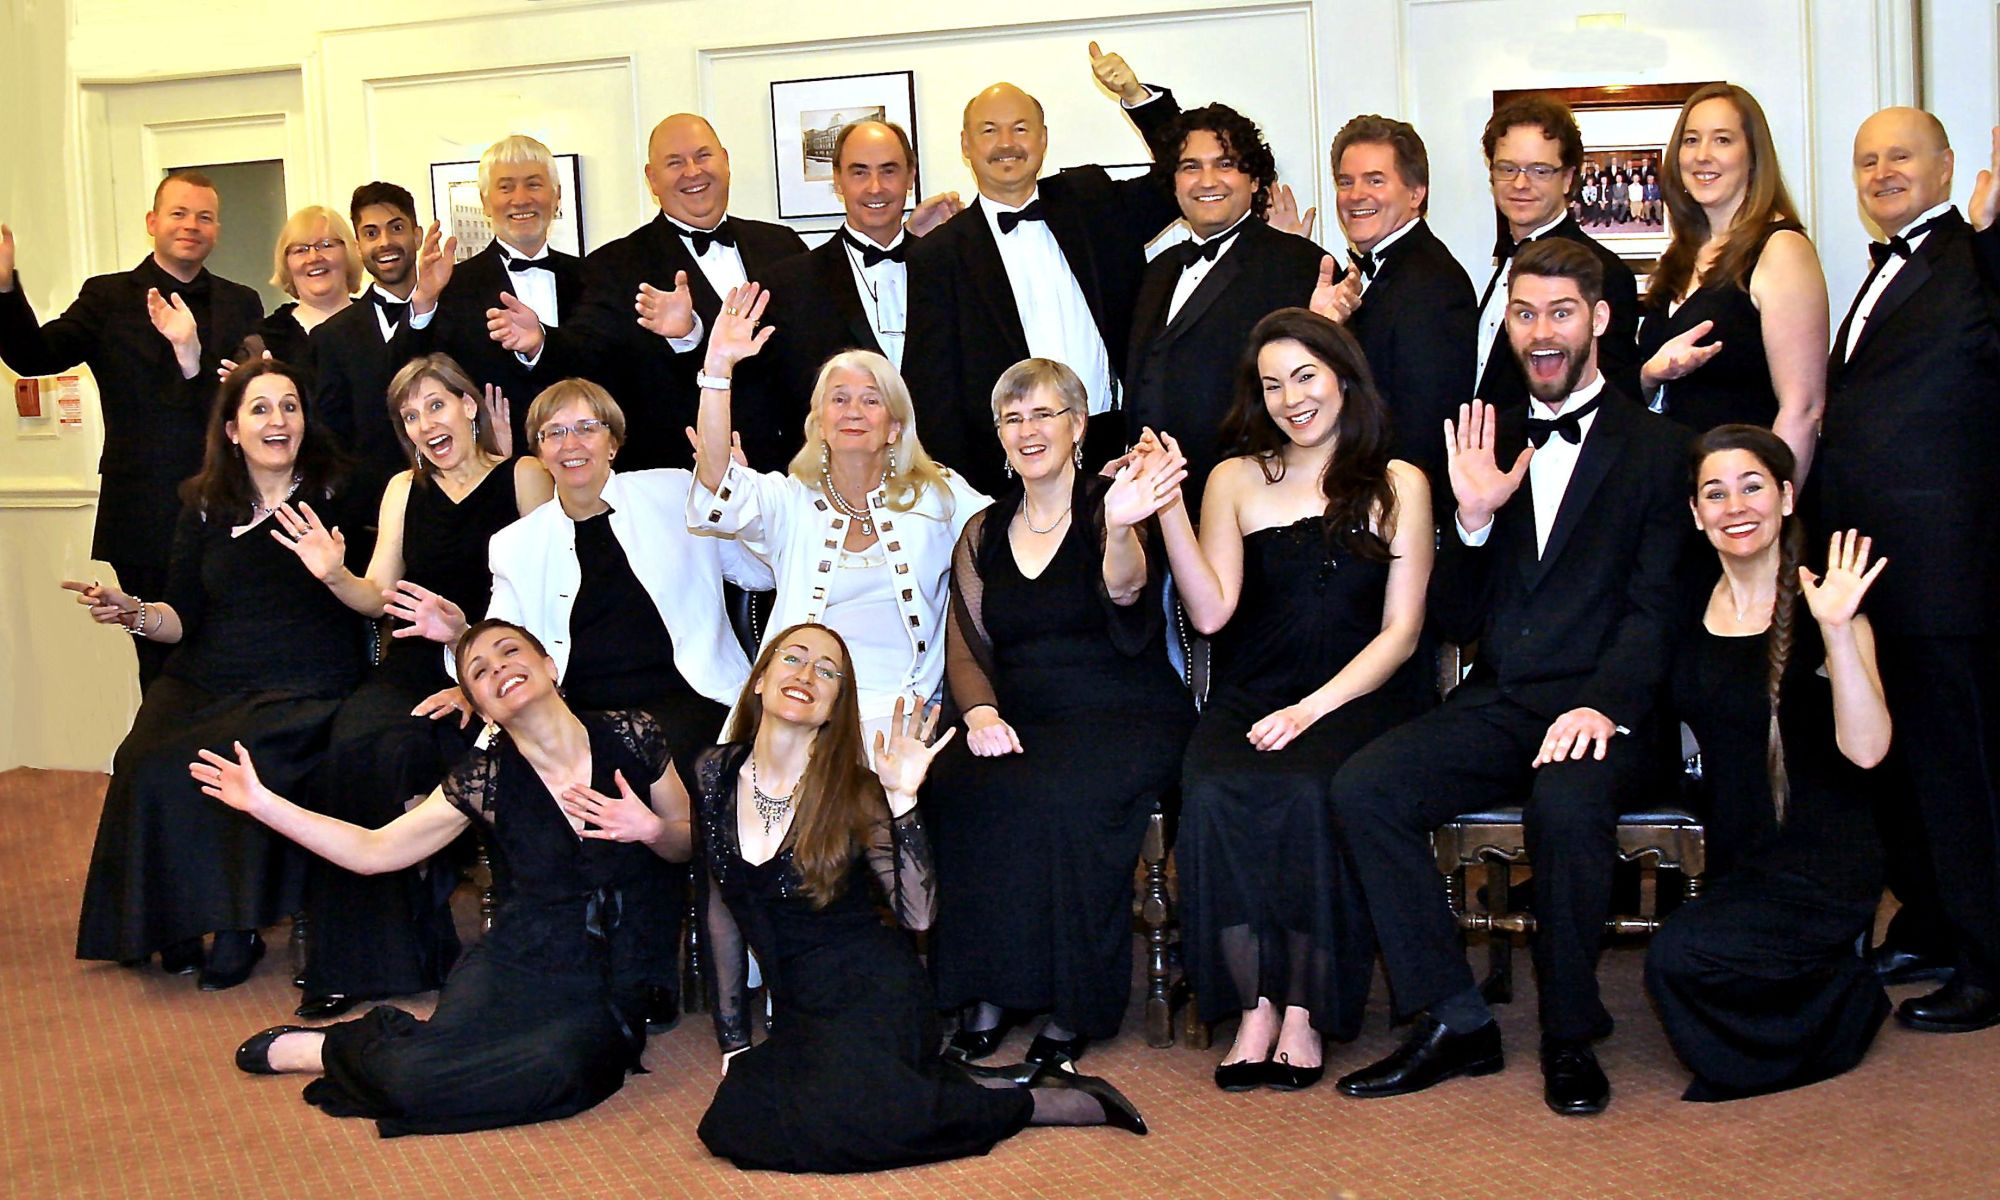 Elmer Iseler Singers, waving, photo: Michael_Romaniuk